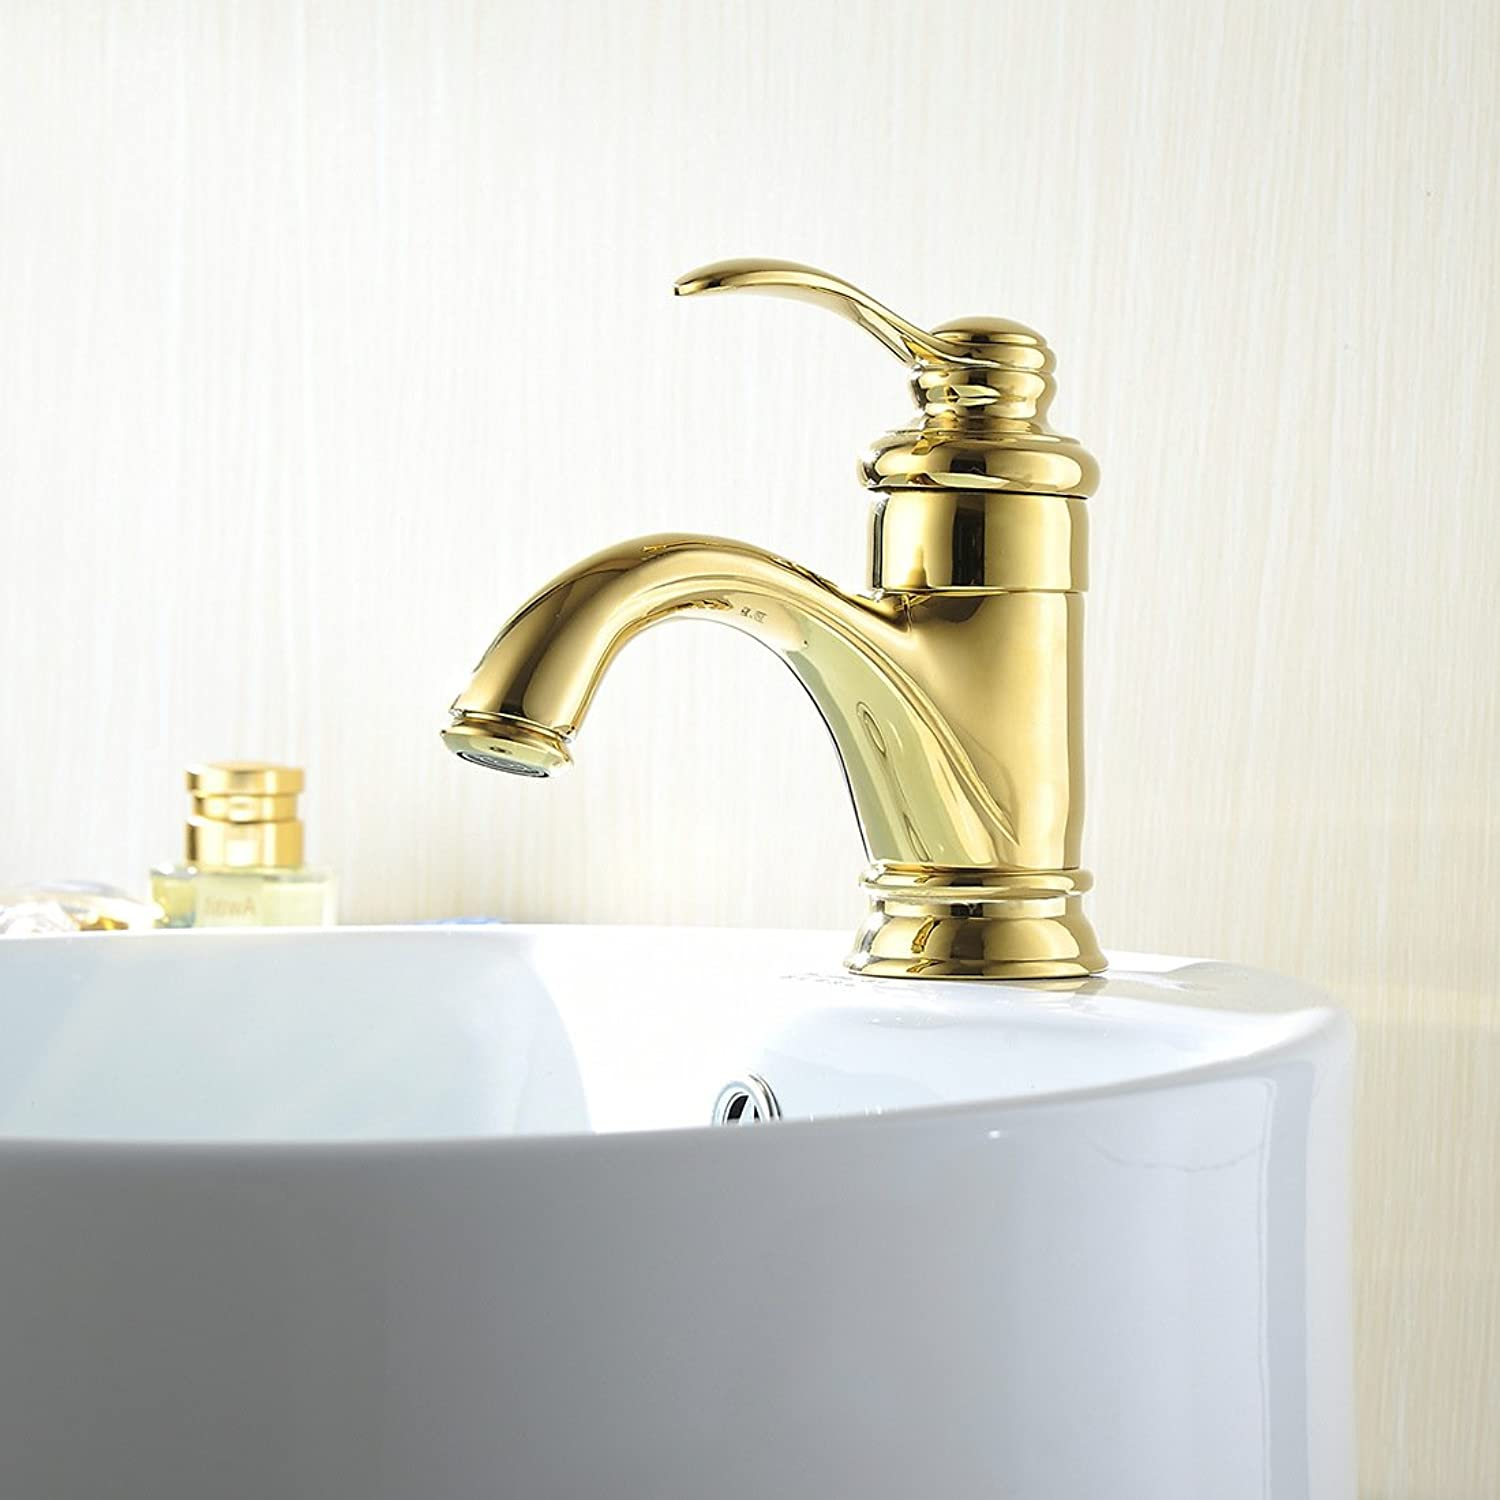 Hlluya Professional Sink Mixer Tap Kitchen Faucet Hot and cold-water faucet gold bathroom basin mixer mixing of hot and cold water taps